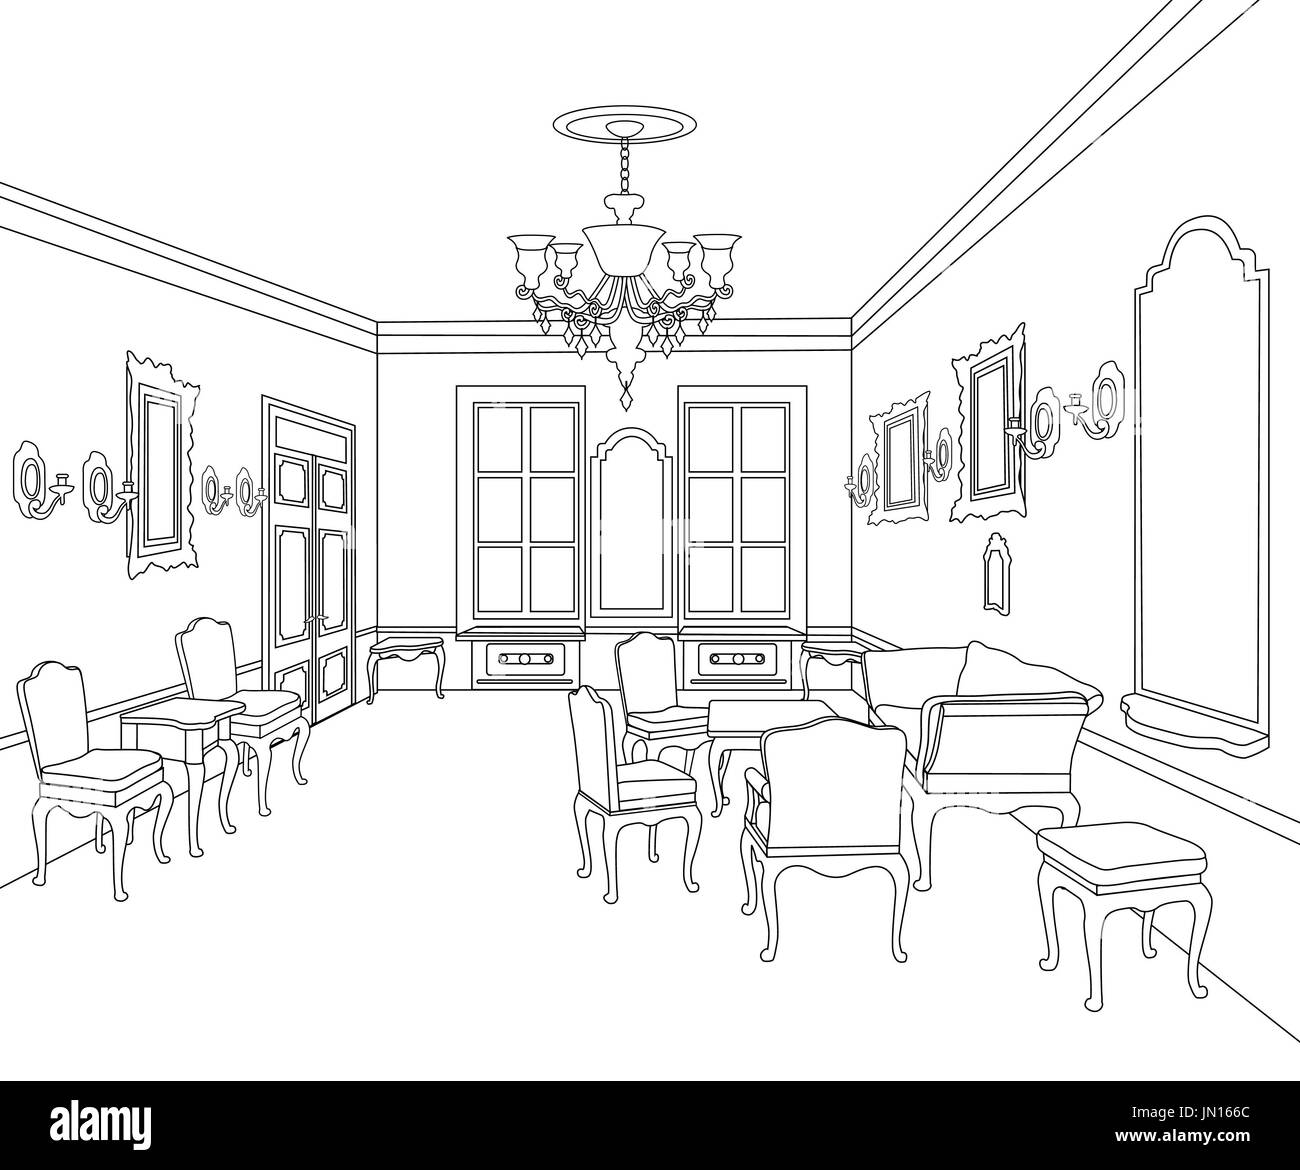 Blueprint black and white stock photos images alamy interior outline sketch furniture blueprint architectural design living room stock image malvernweather